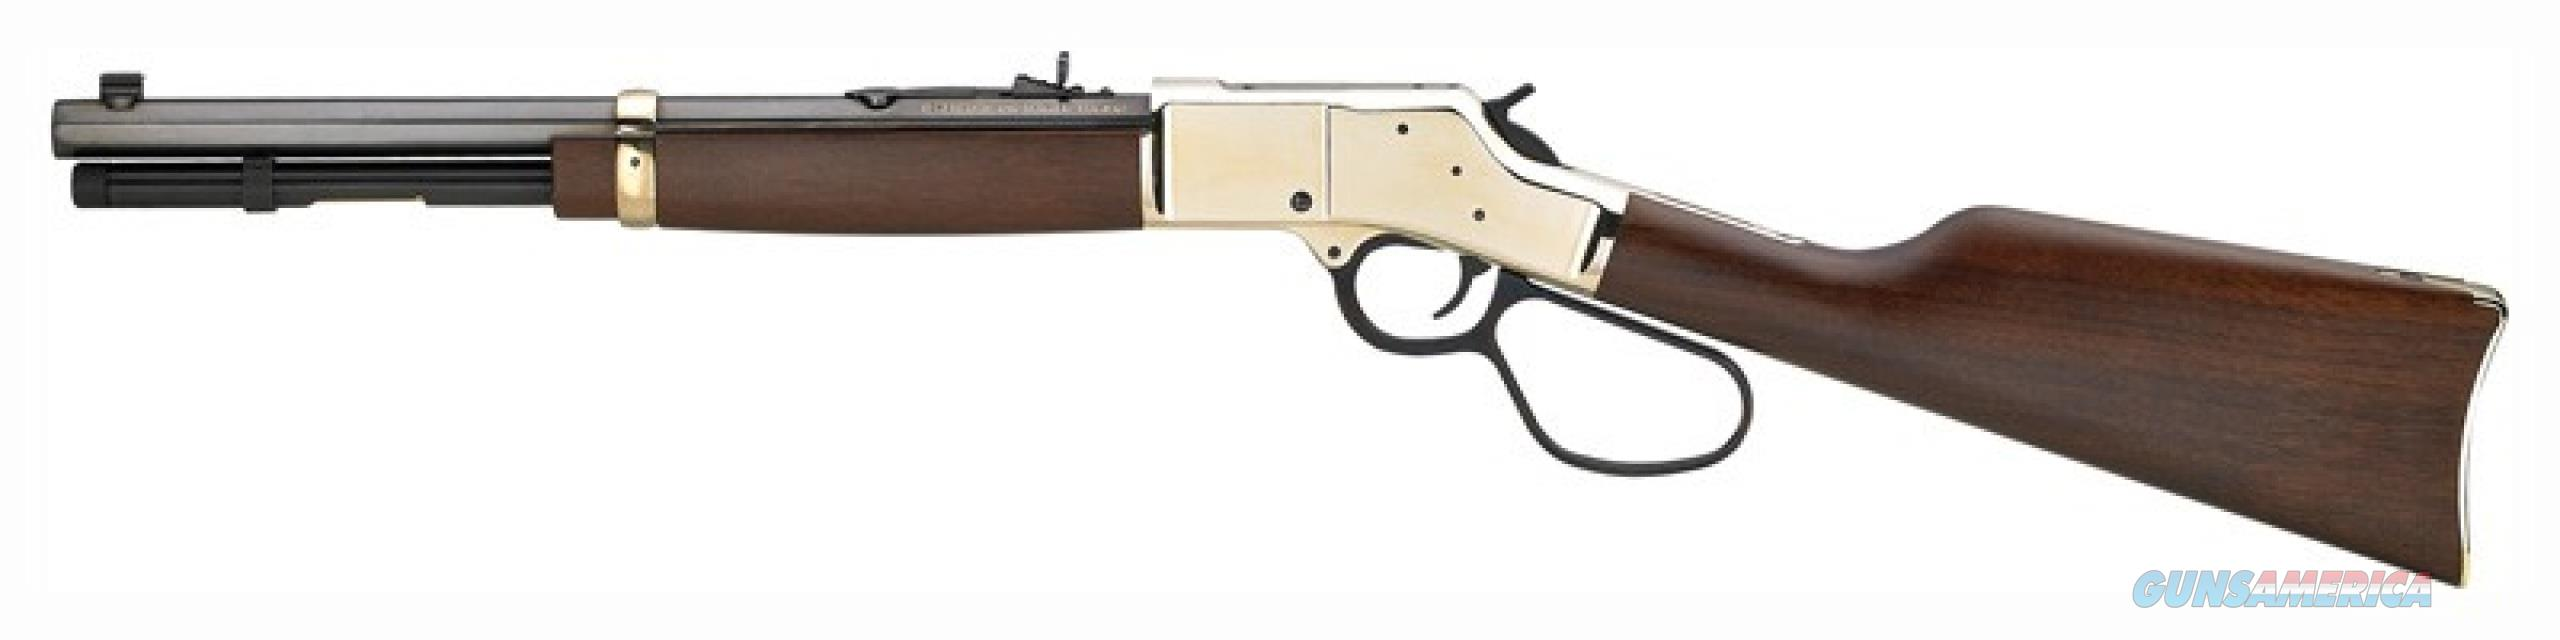 Big boy henry rifle